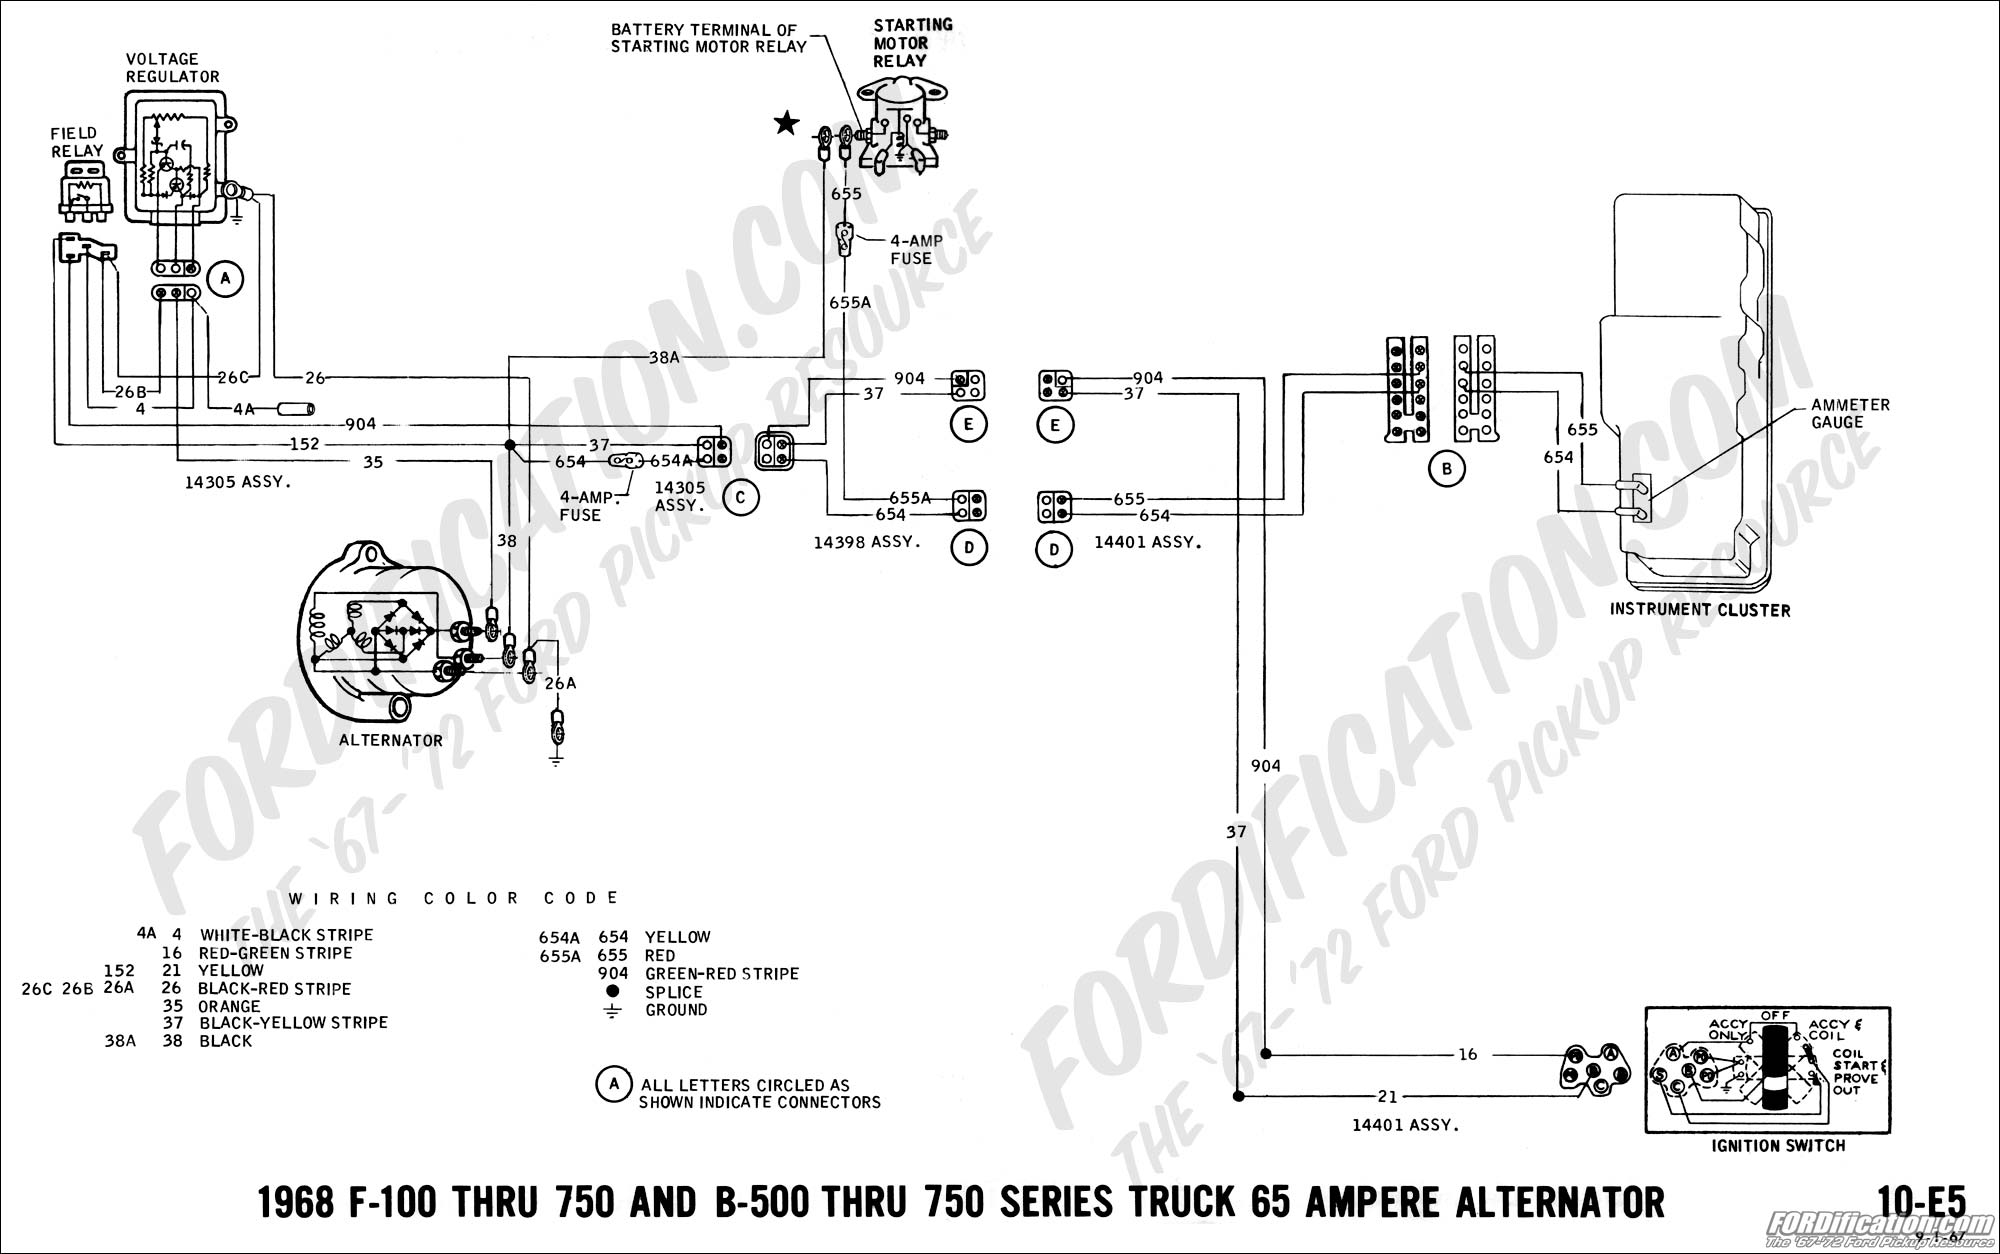 68 07 ford truck technical drawings and schematics section h wiring Typical Ignition Switch Wiring Diagram at creativeand.co